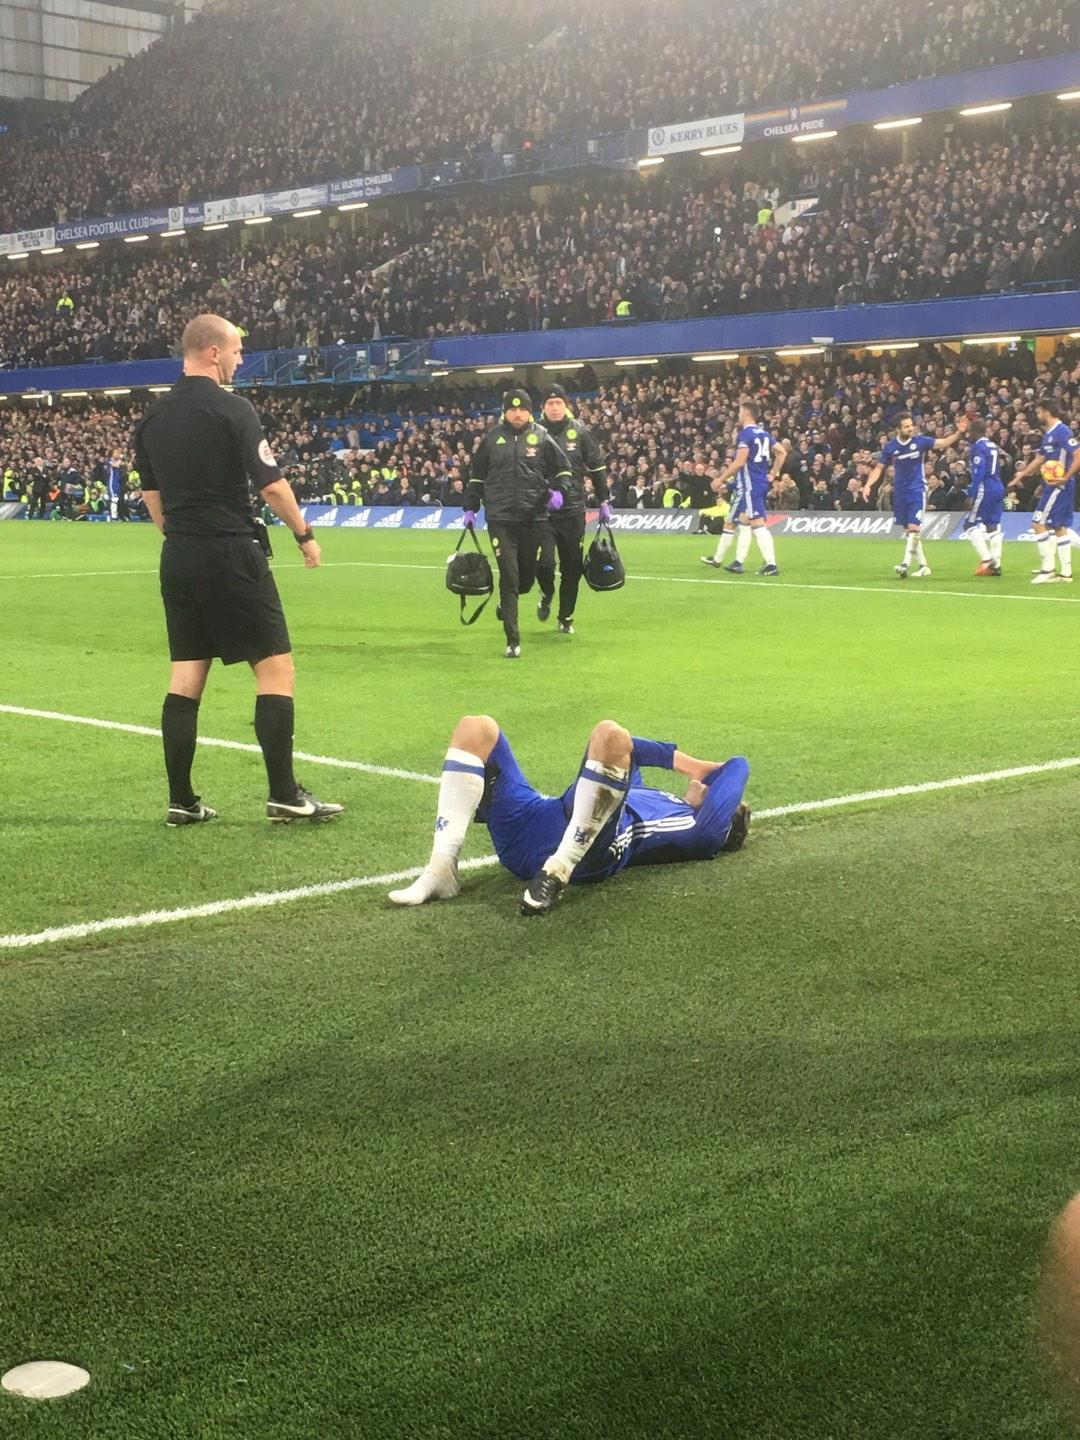 Stamford Bridge Section Shed End Lower 4 Row 1 Seat 102